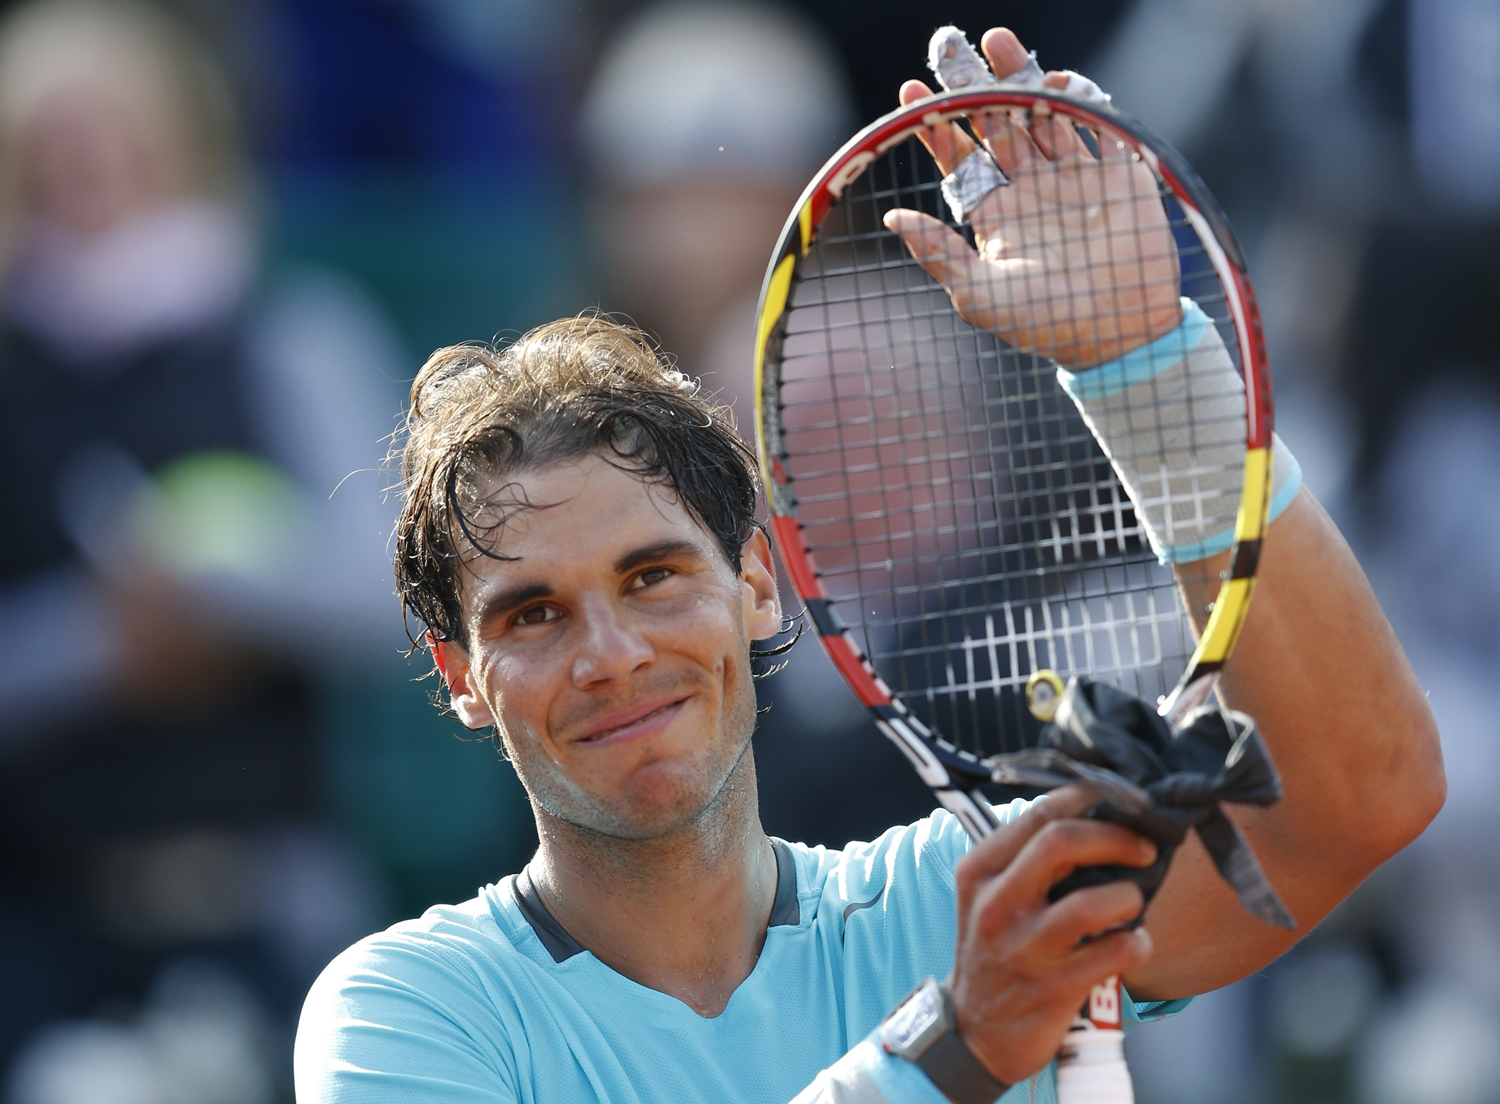 Rafael Nadal of Spain reacts after defeating Robby Ginepri of the U.S. in their men's singles match at the French Open tennis tournament at the Roland Garros stadium in Paris May 26, 2014.